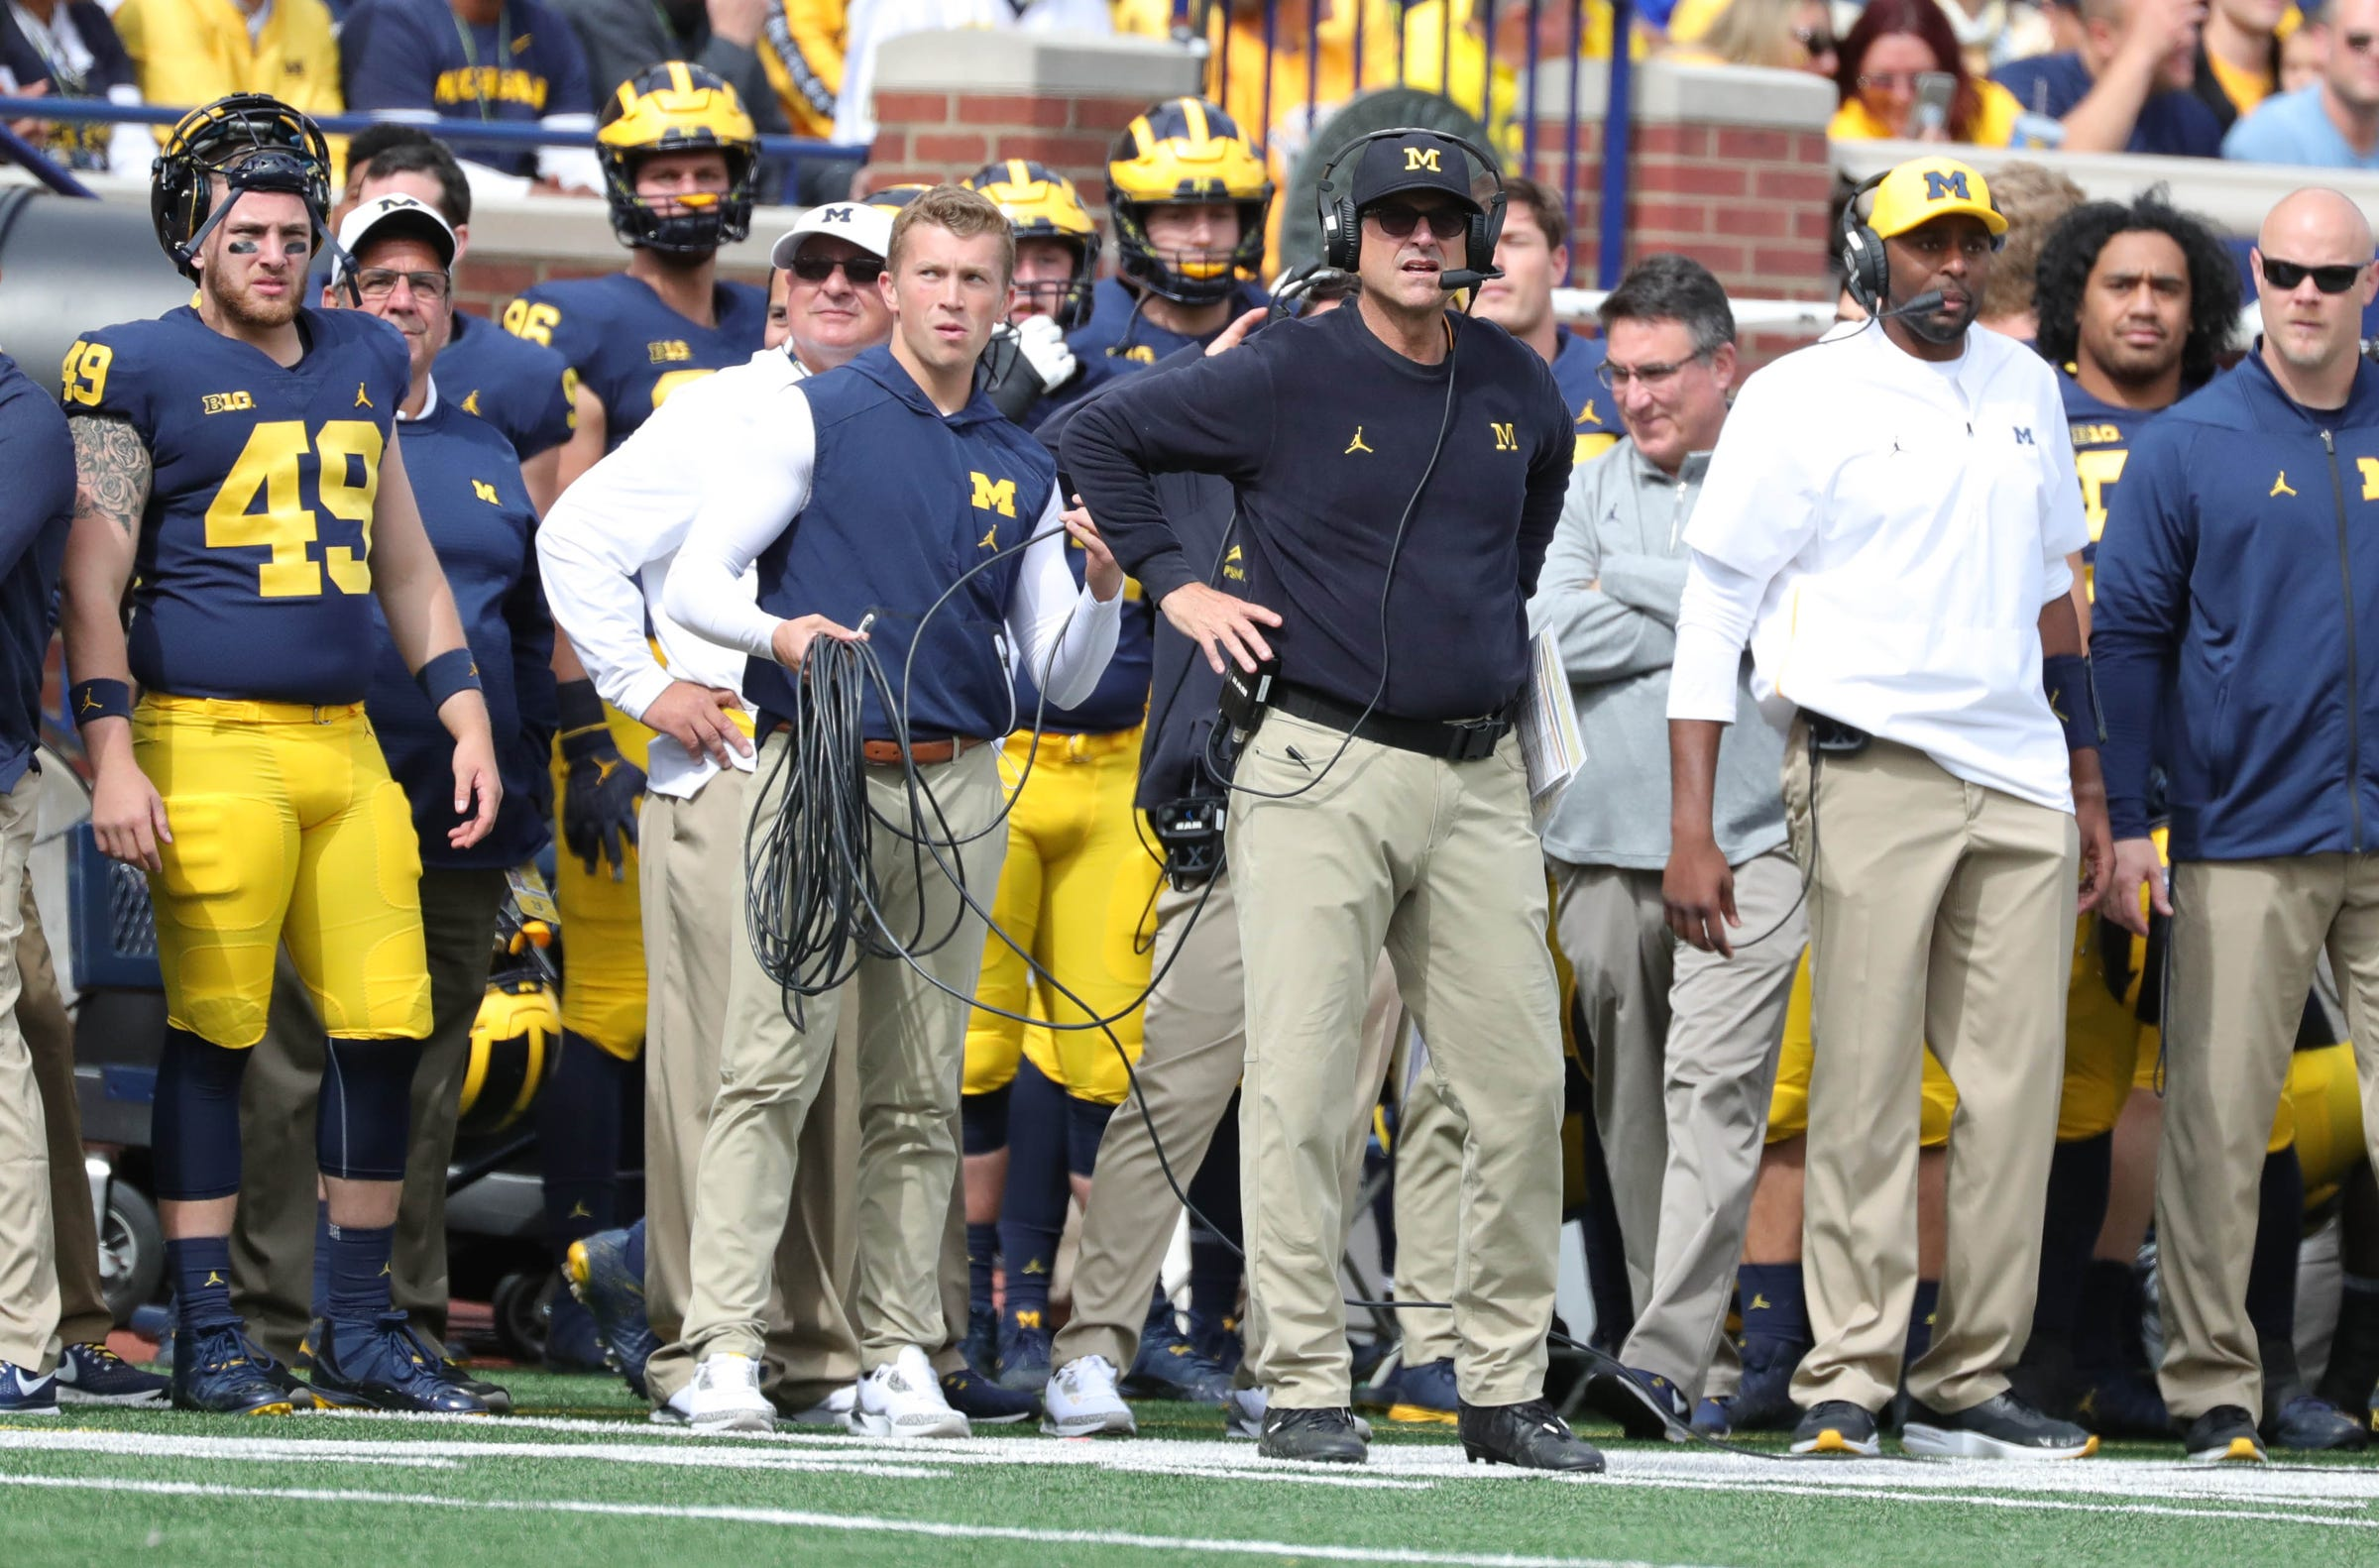 Michigan coach Jim Harbaugh on the sidelines during the first half on Saturday, Sept. 22, 2018, at Michigan Stadium.